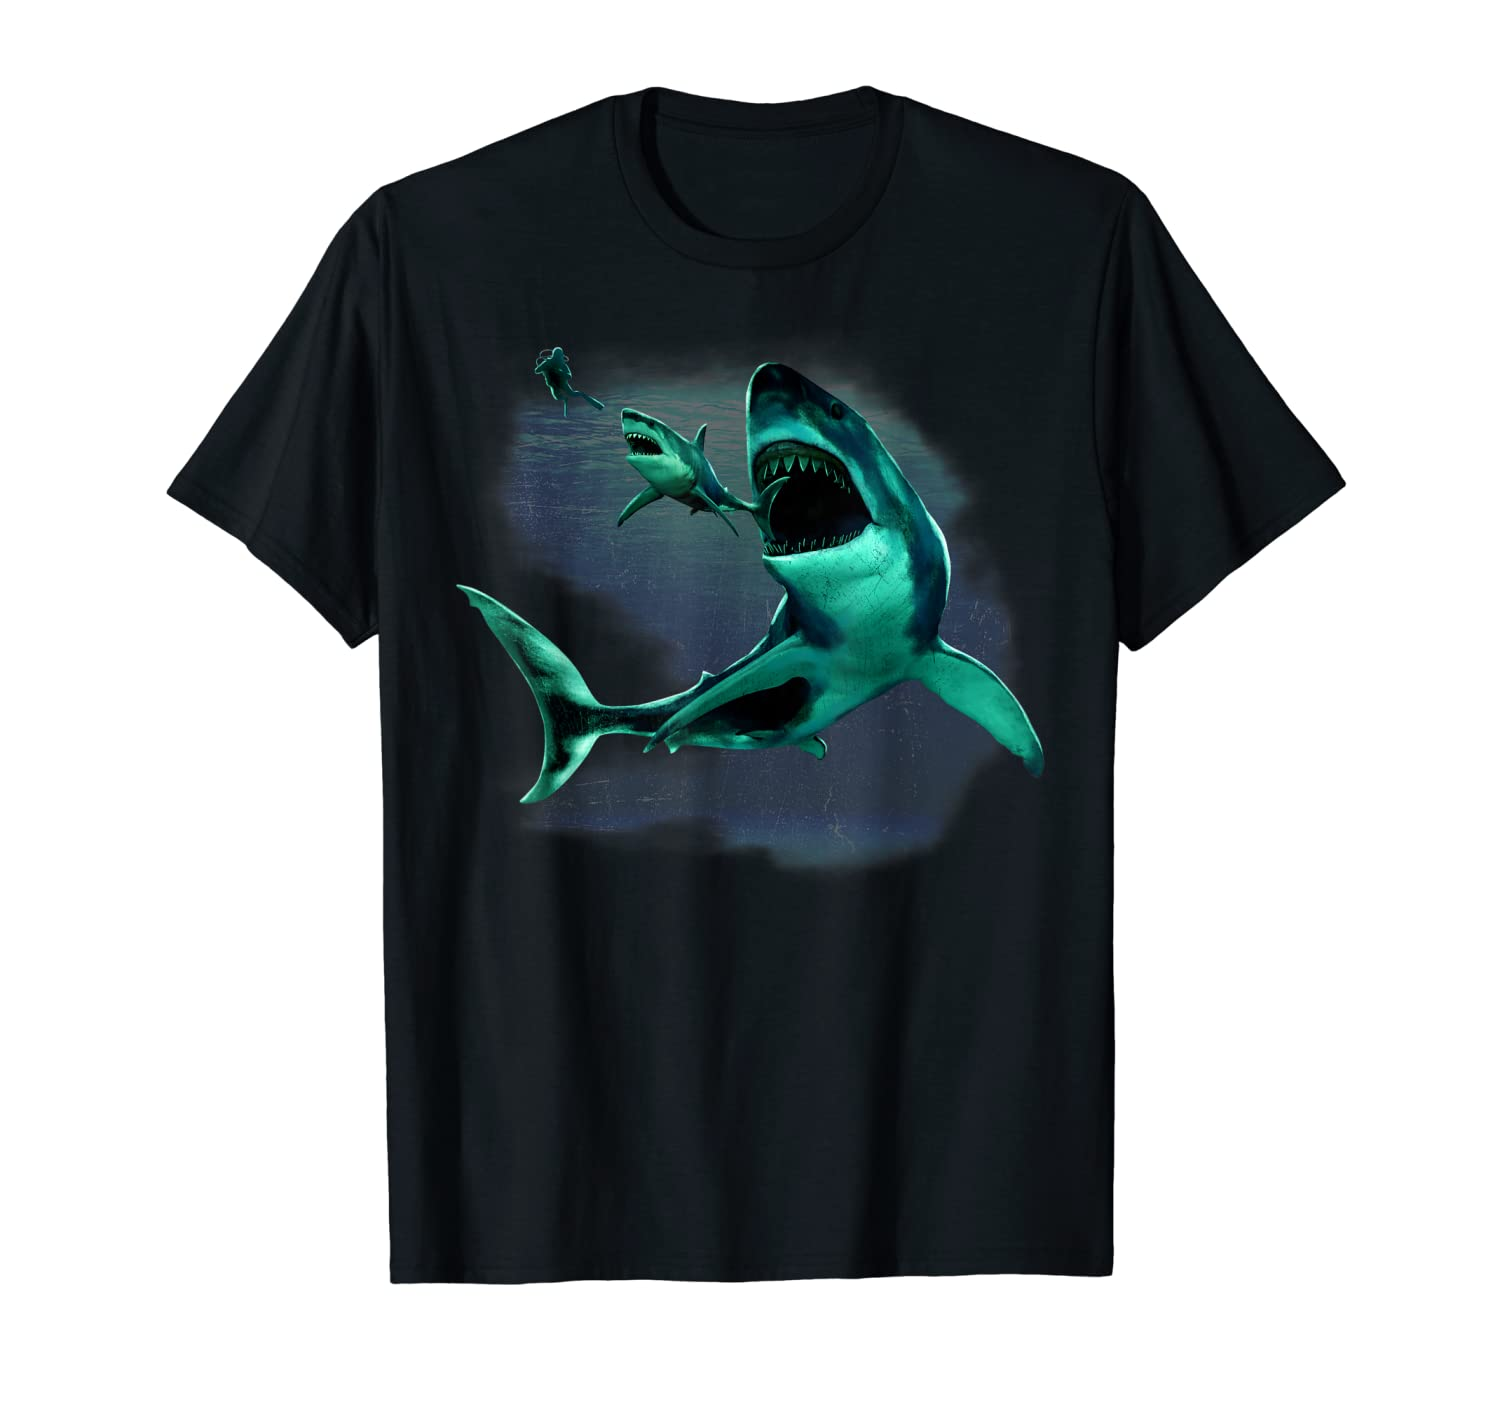 Dinosaur Shark, Great White & Scuba Diver in Ocean t shirt